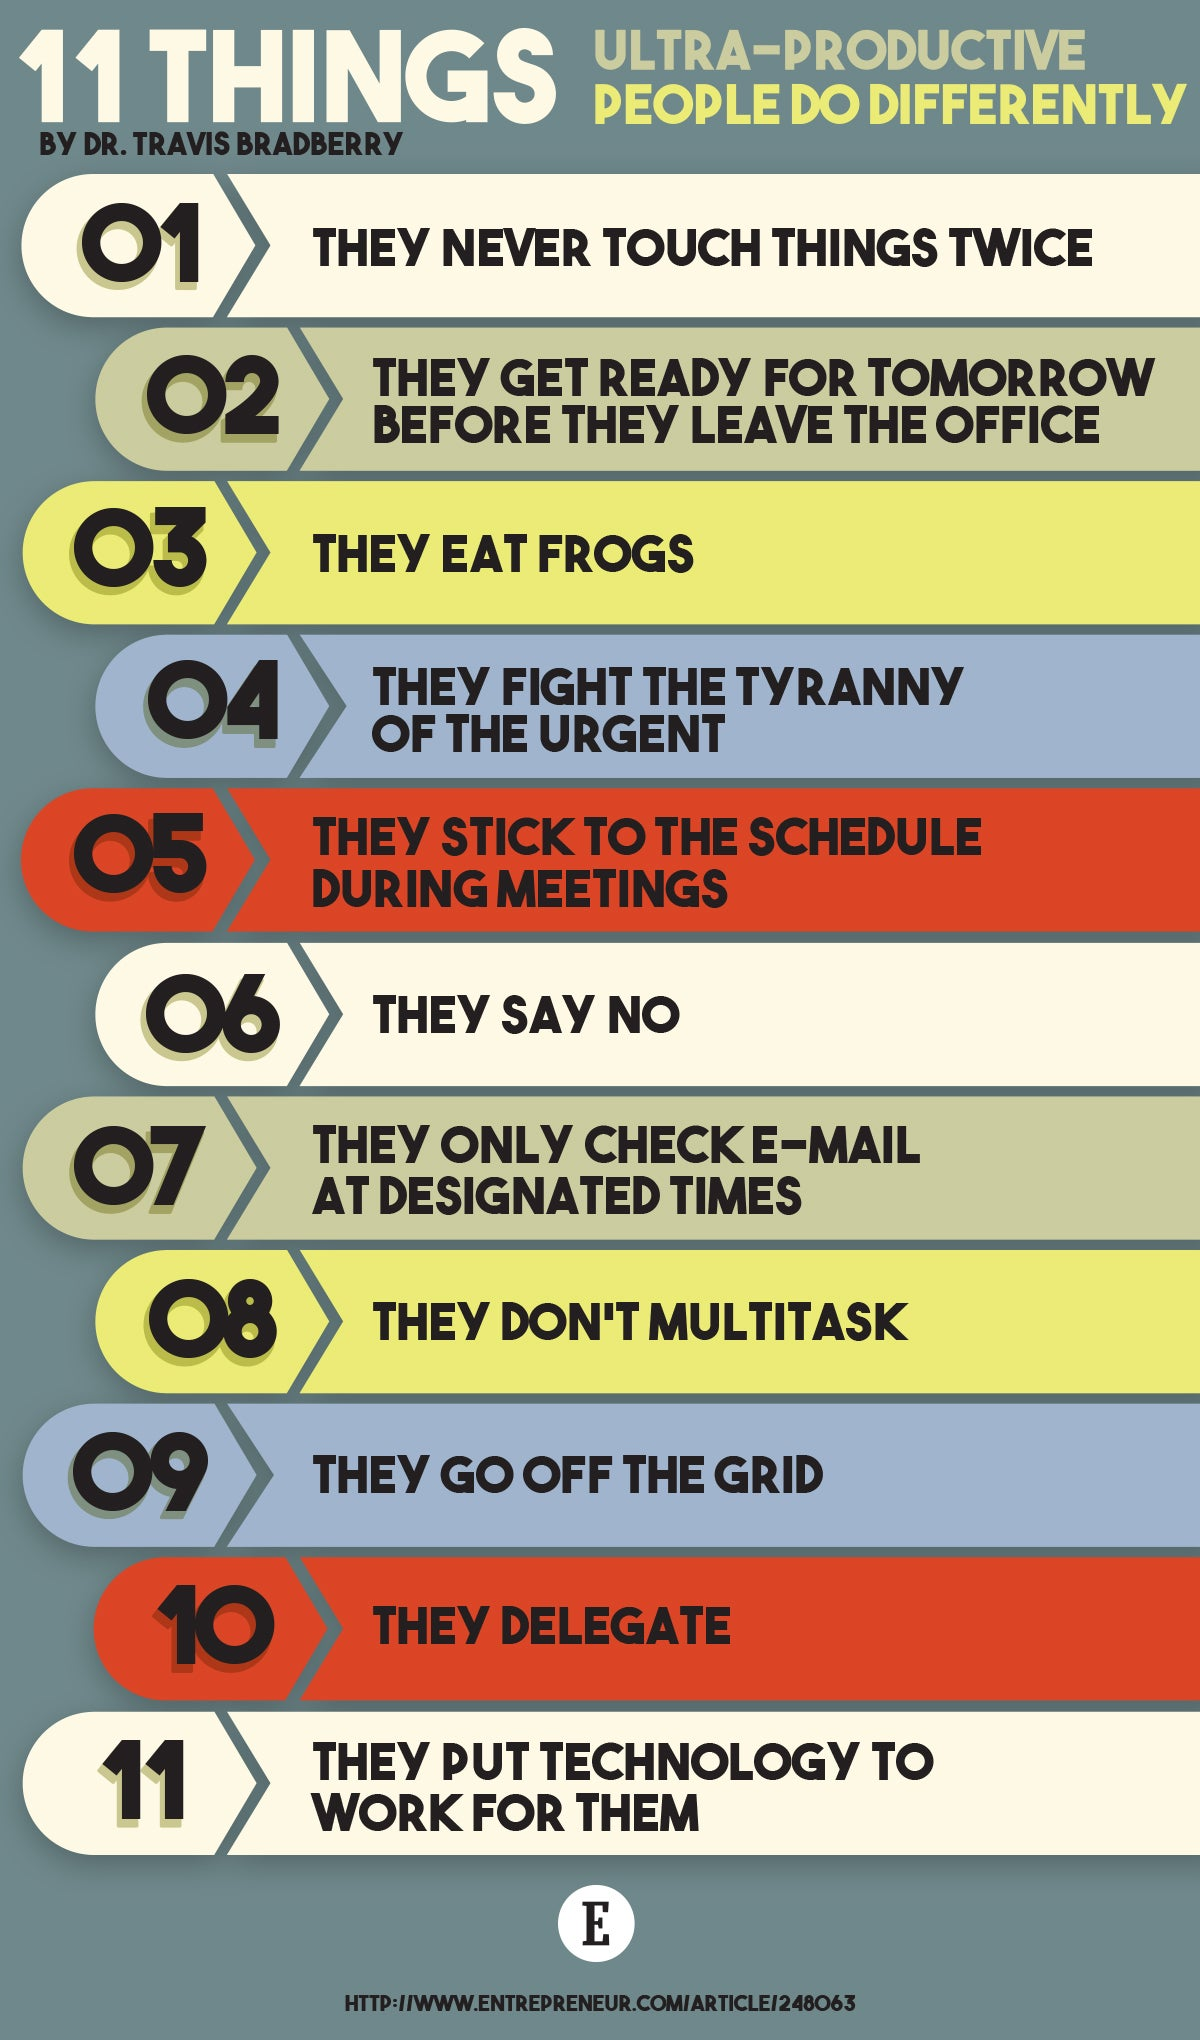 11 Things Ultra-Productive People Do Differently (Infographic)